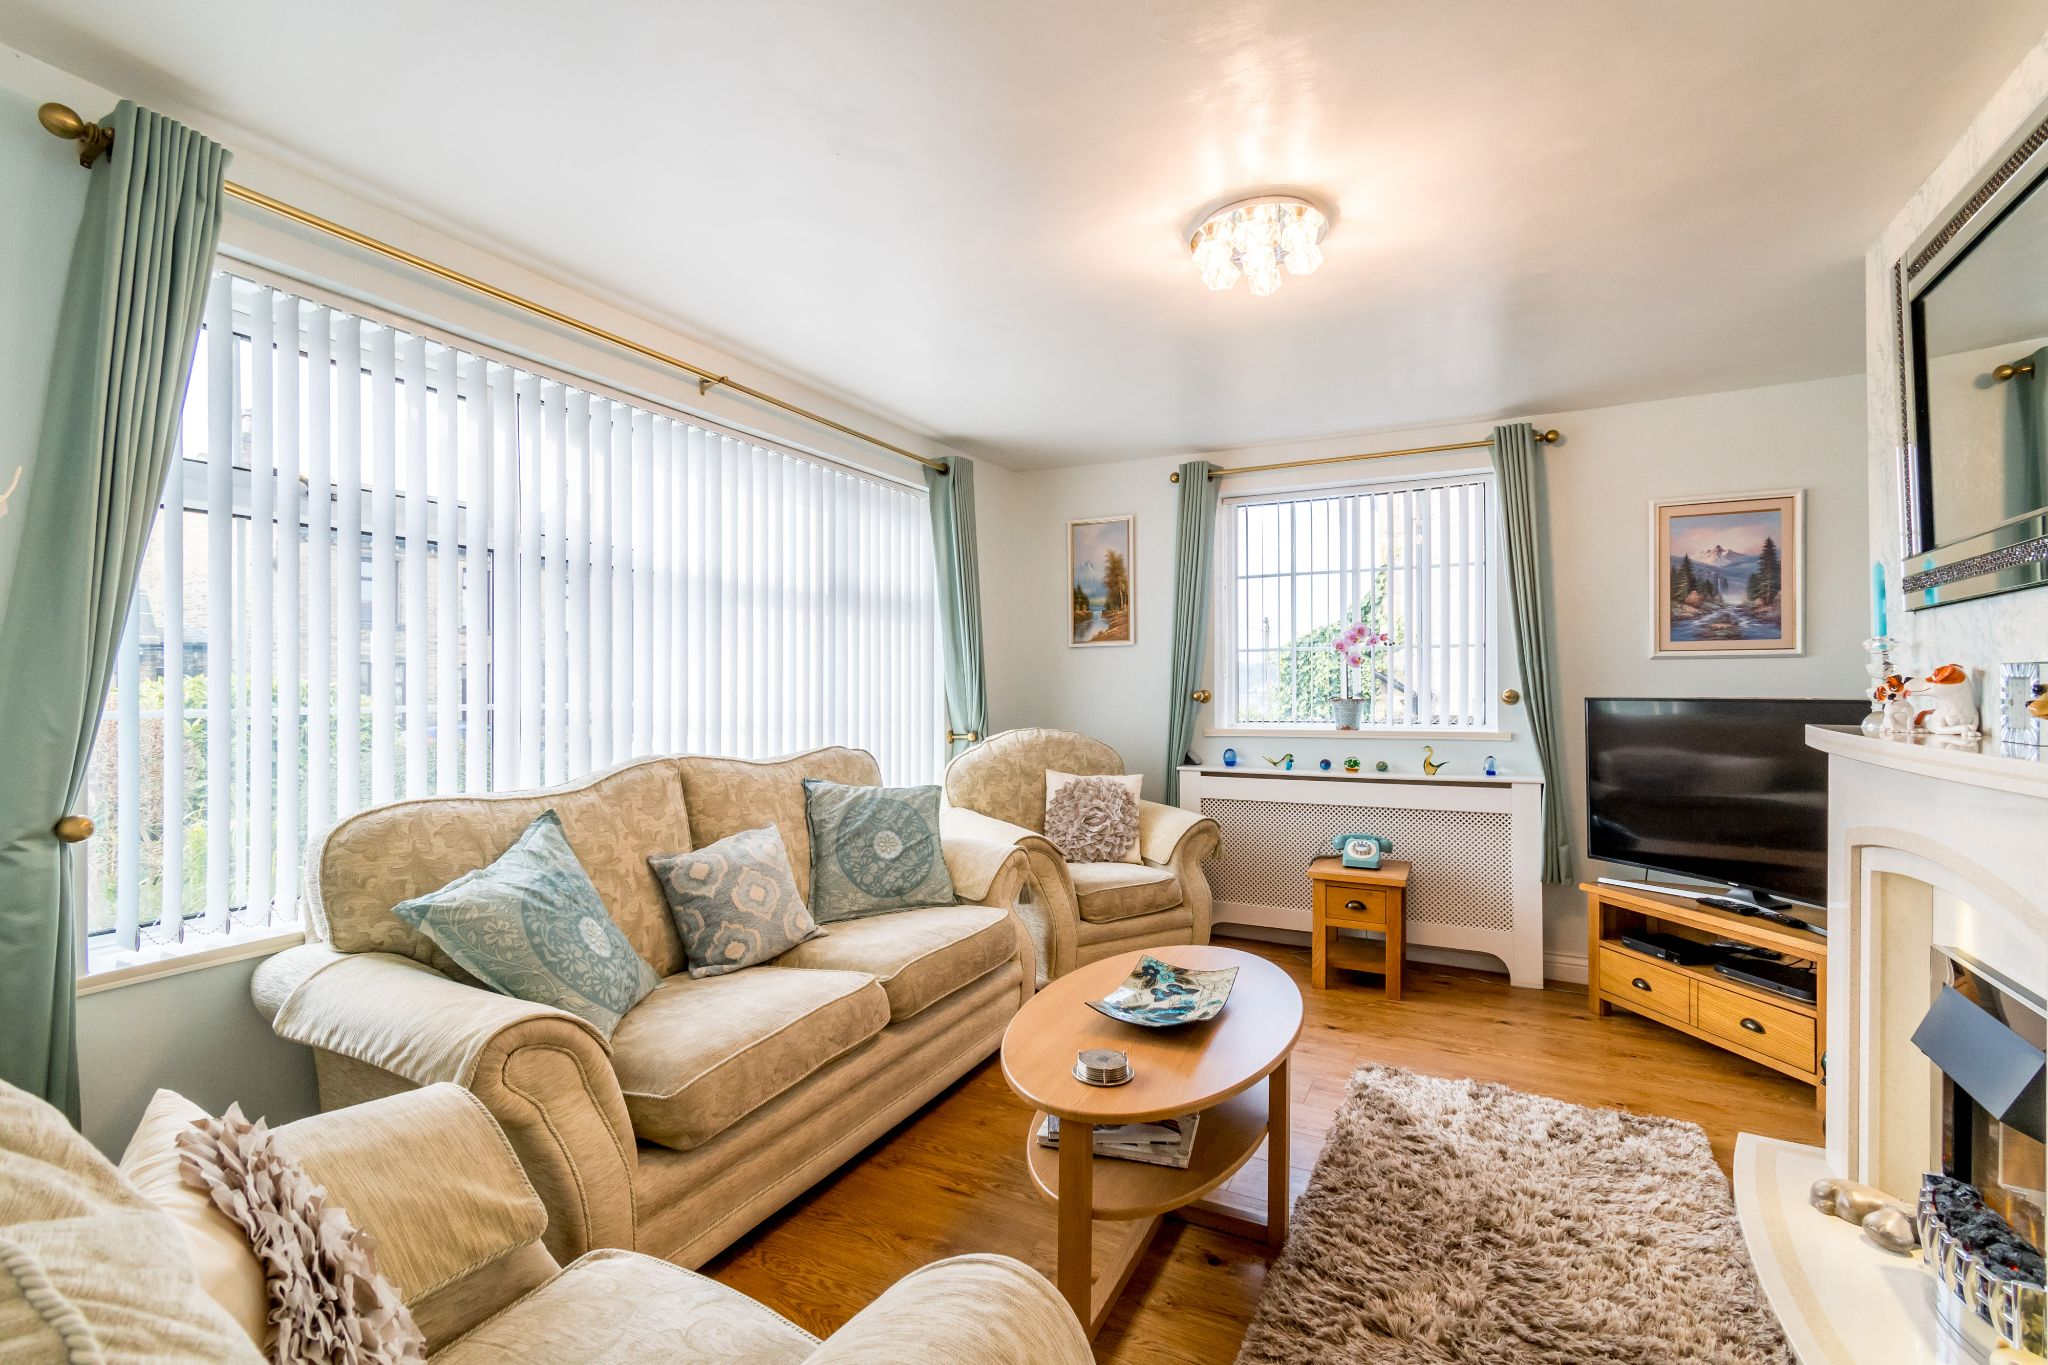 3 bedroom detached bungalow For Sale in Hove Edge - Lounge